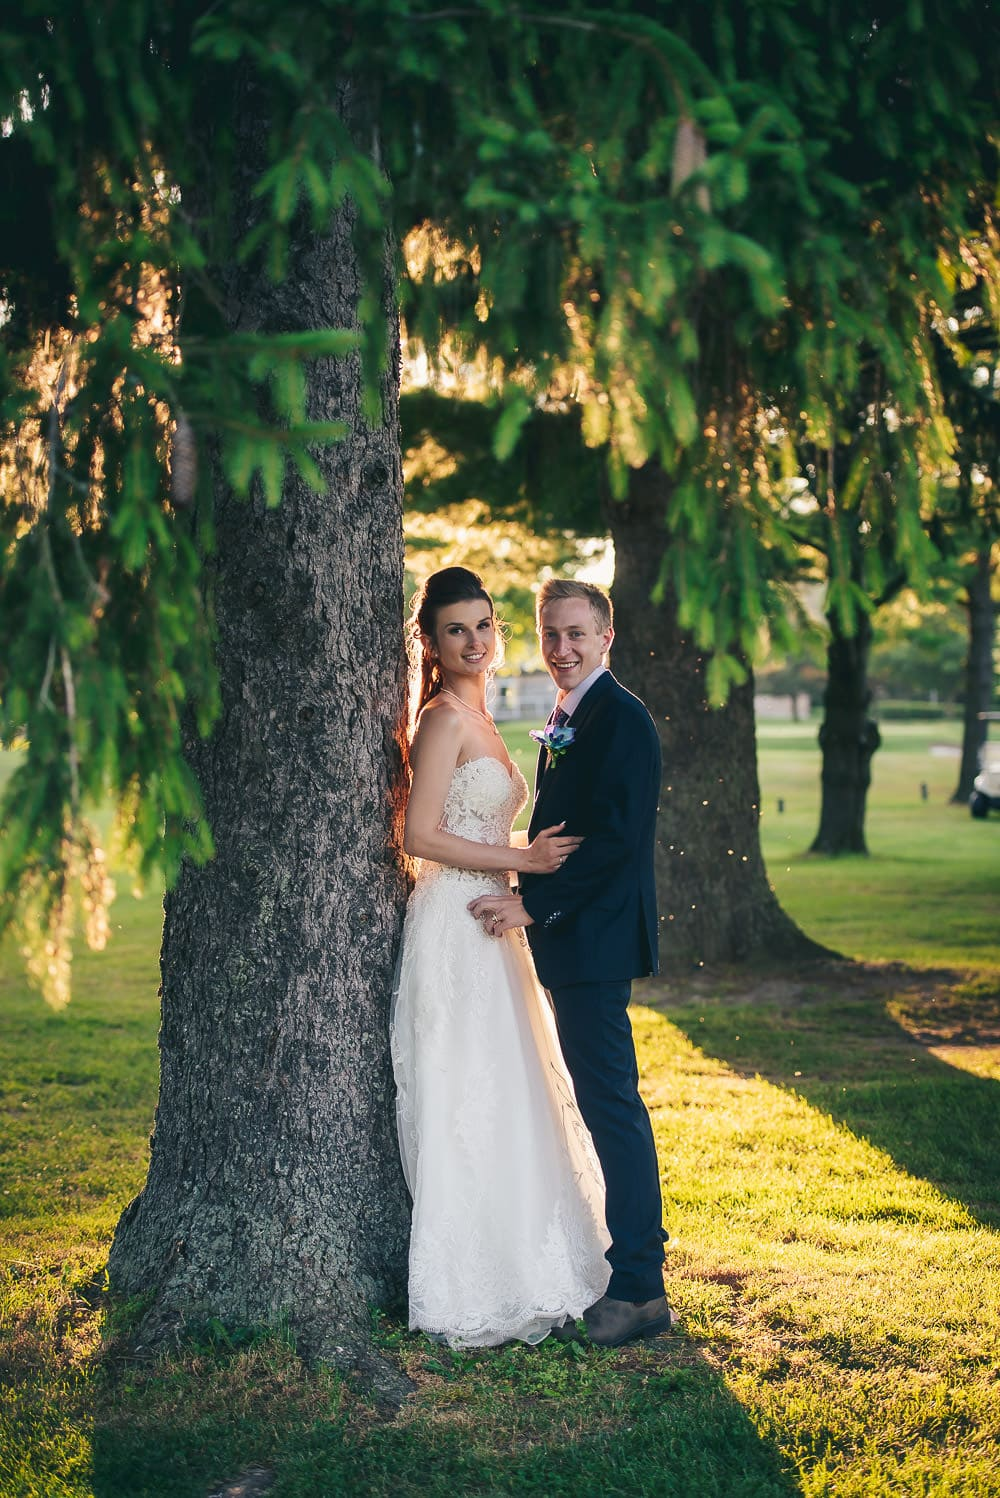 bride and groom wedding photo at golden hour in Mitchell golf club